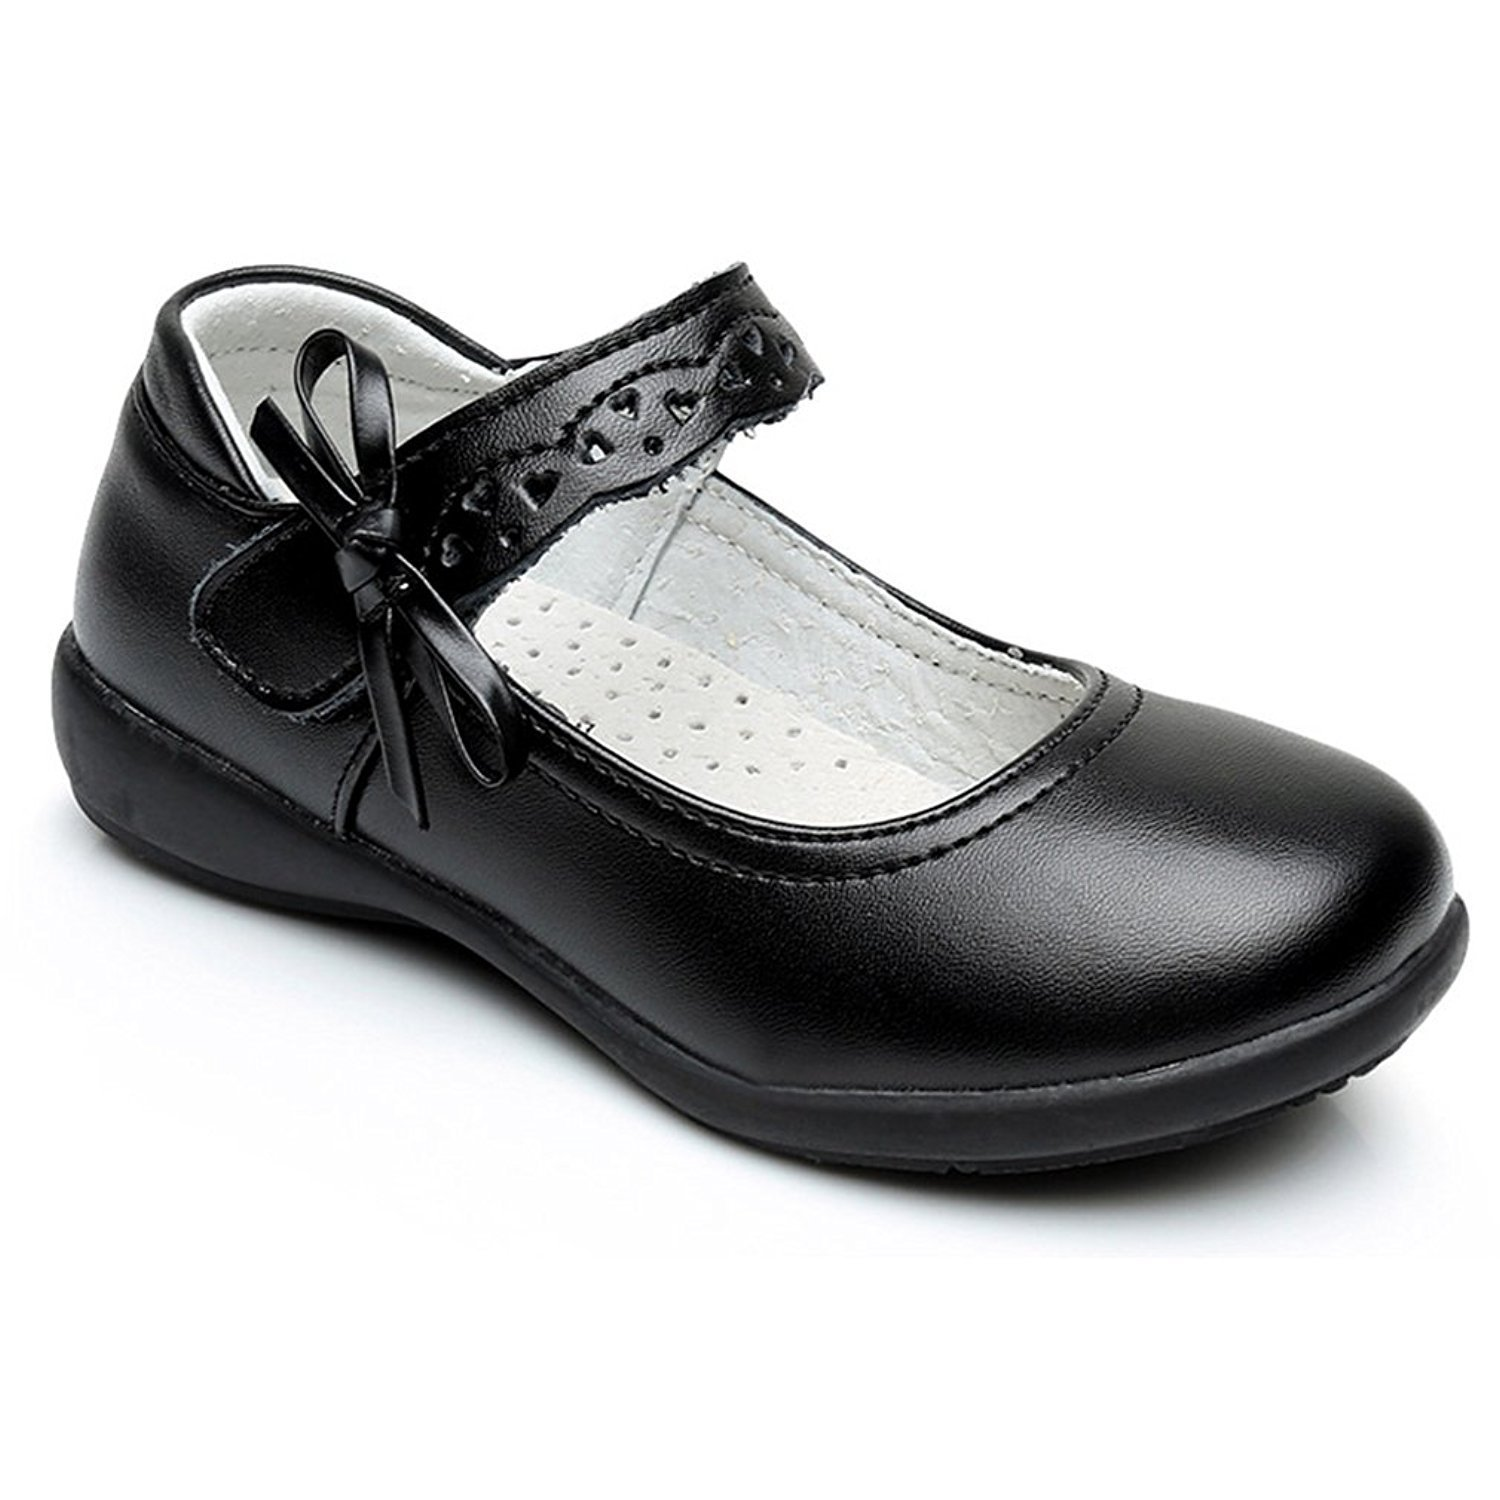 Toddler//Little Kid//Big//Kid 24XOmx55S99 Girls Strap School Uniform Dress Shoe Mary Jane Flat